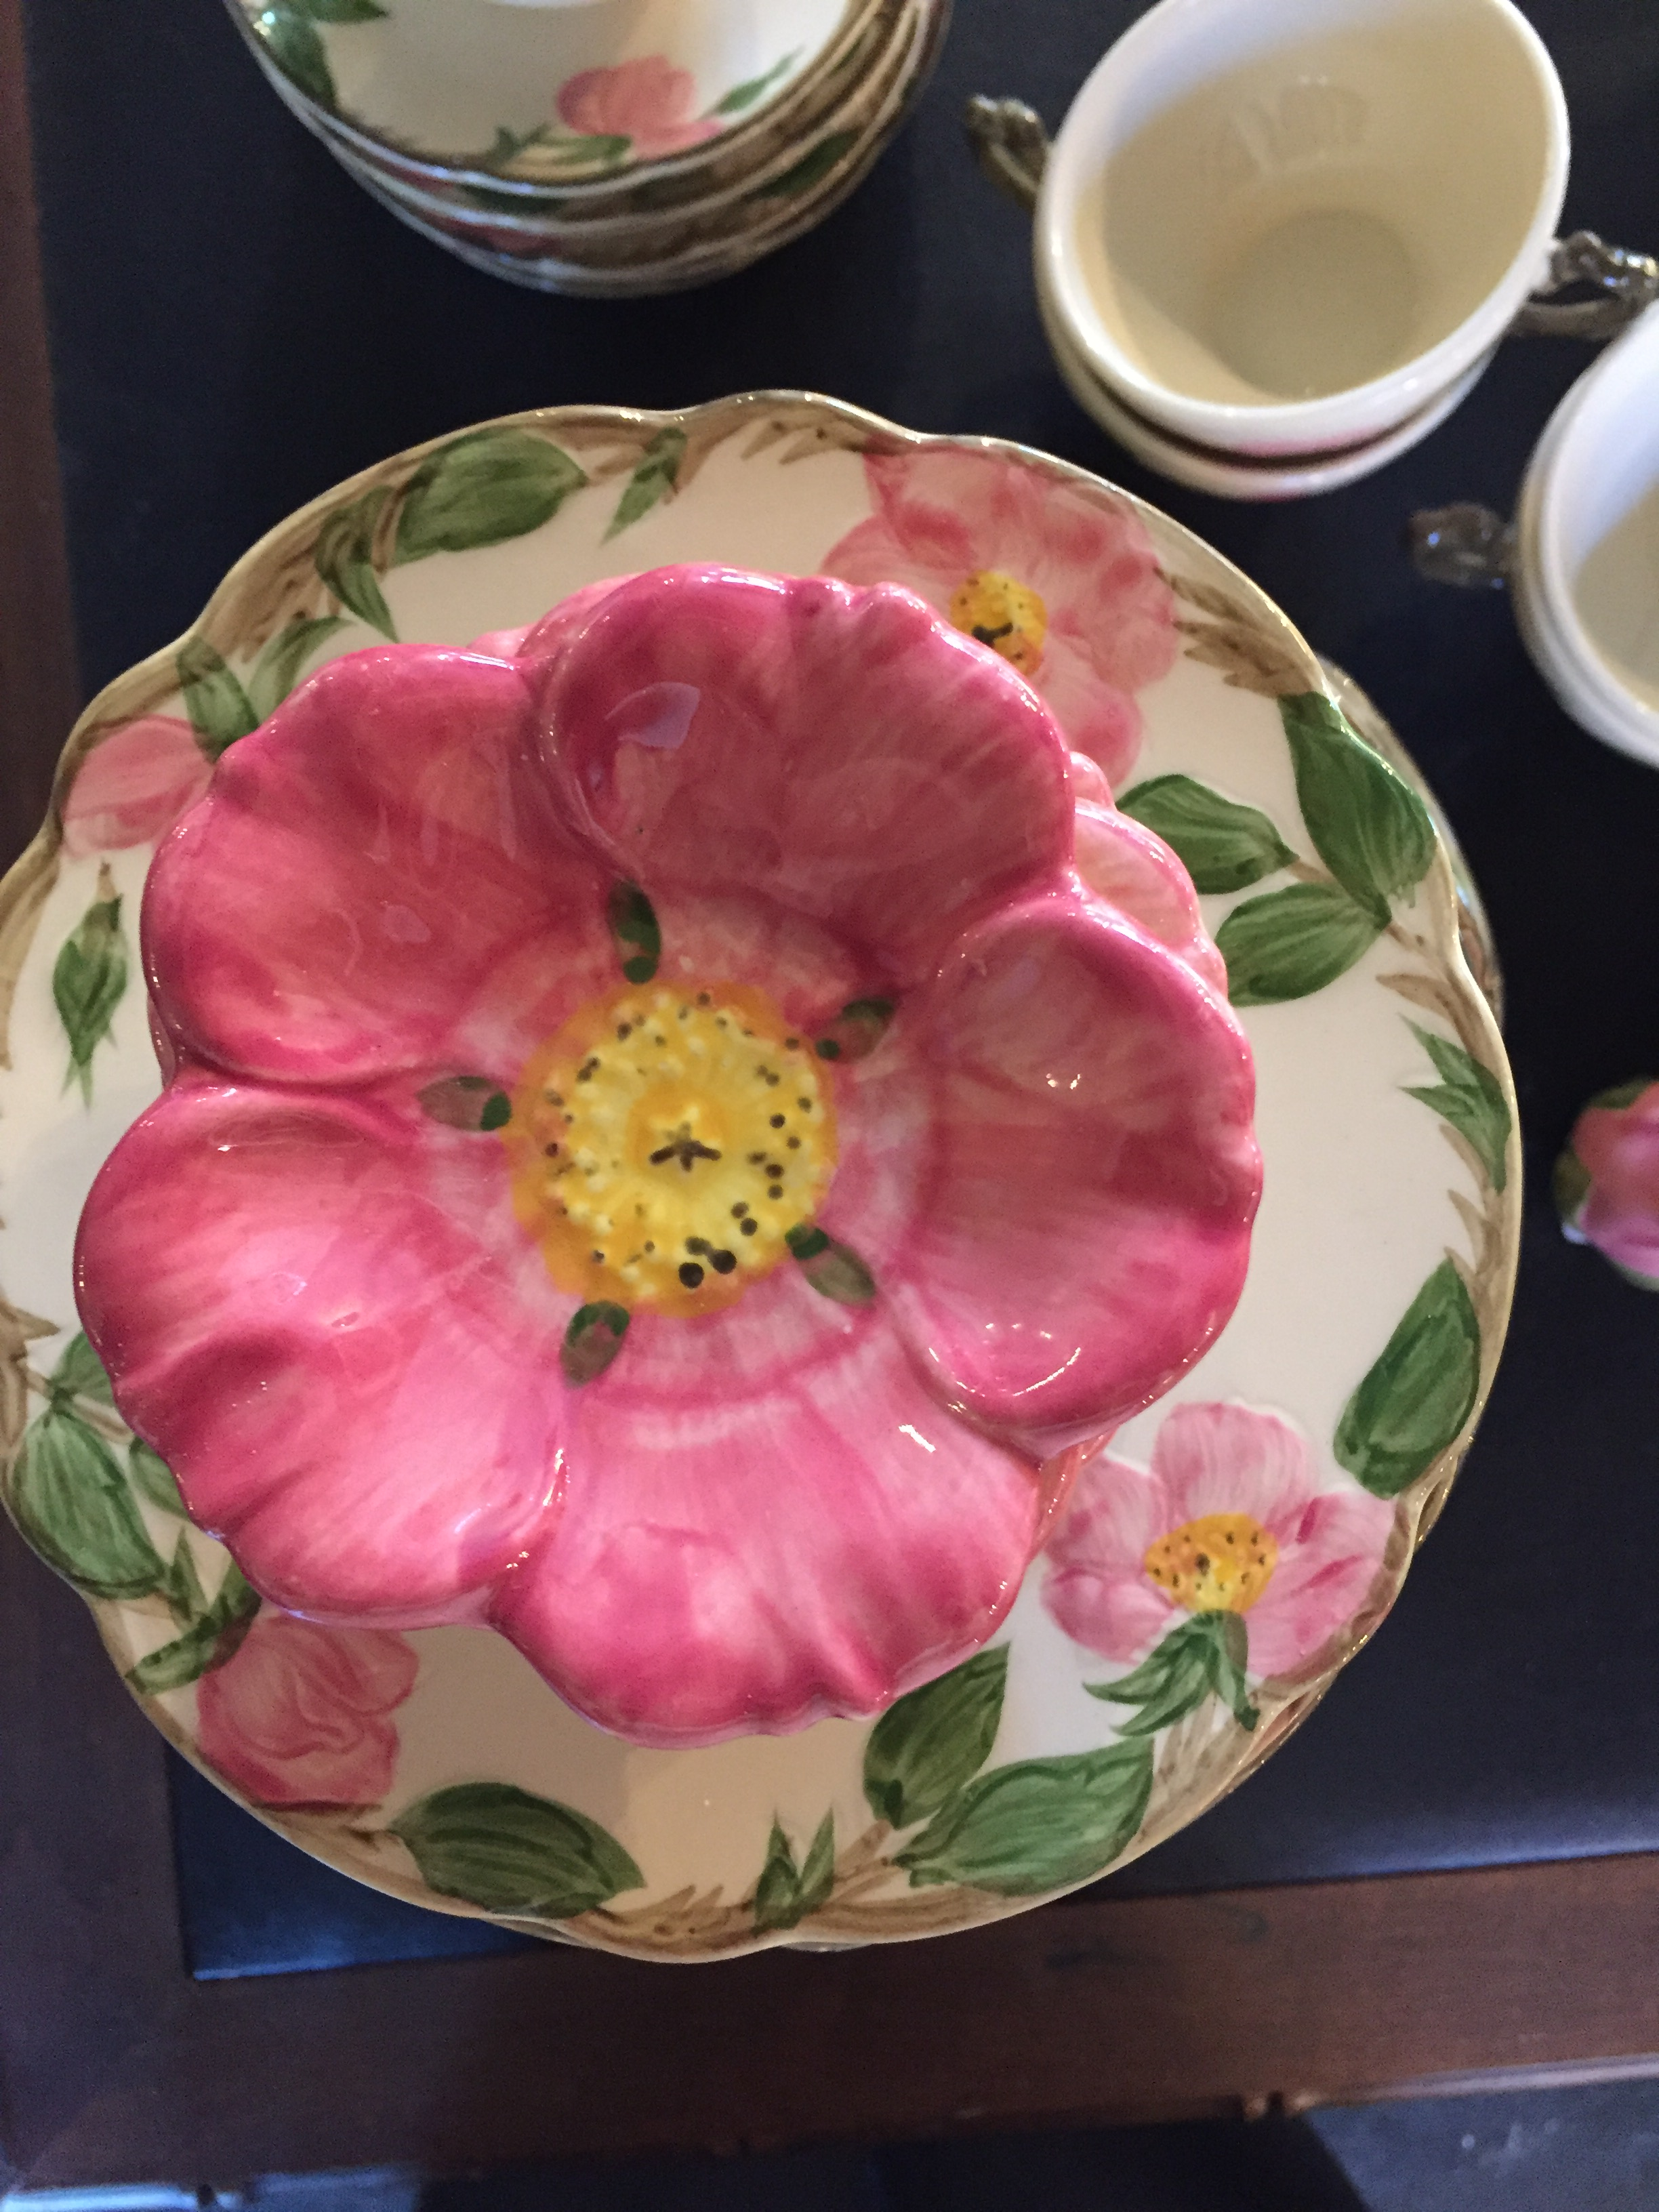 Franciscan Desert Rose butter pat rose and plates